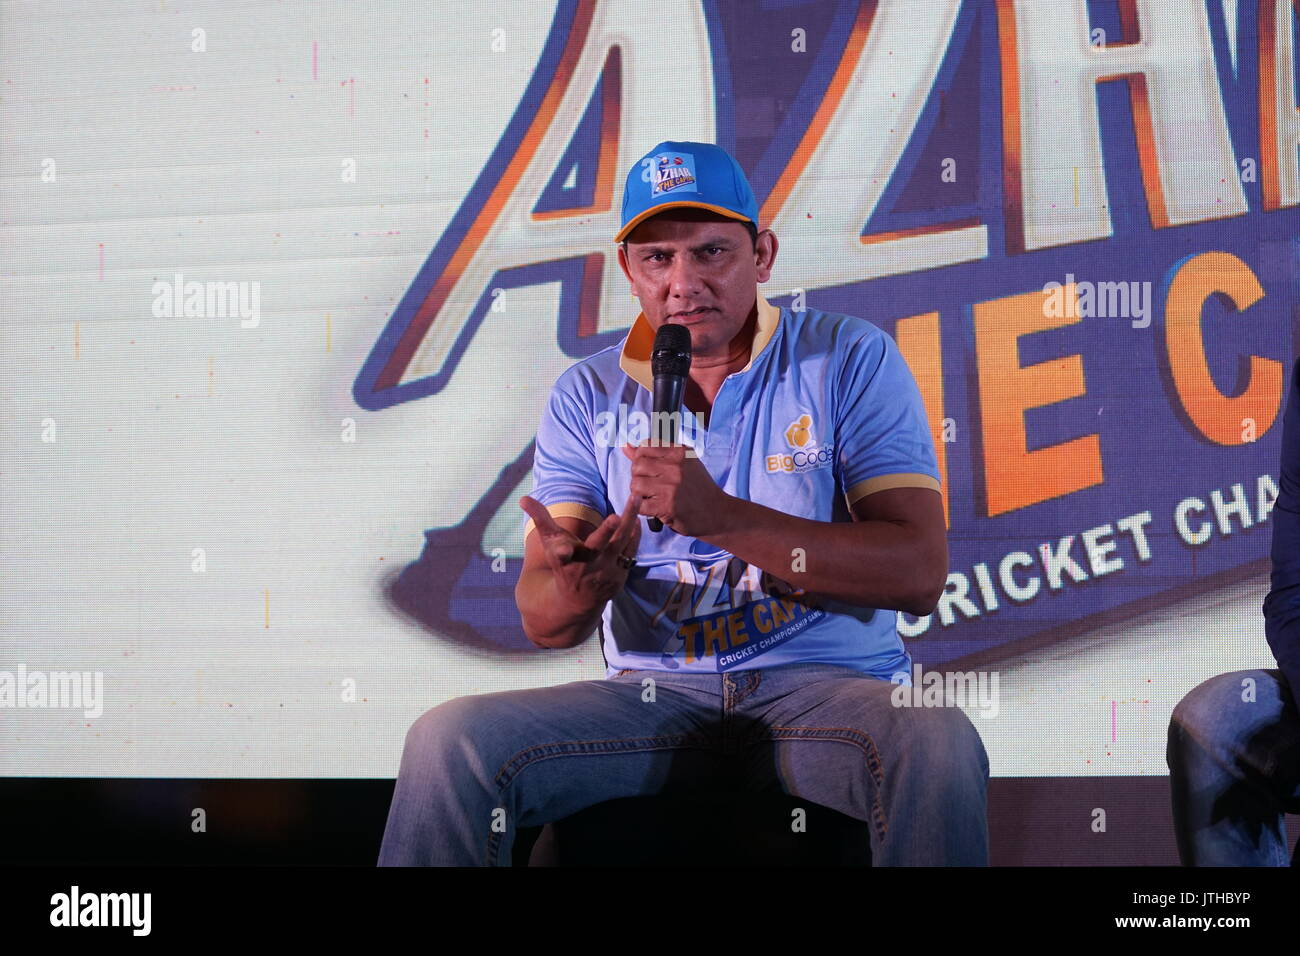 Mumbai, India. 9th August, 2017. Former Indian cricketer Mohammed Azharuddin during the pre-launch of Azhar- The Captain, Cricket Championship mobile game at j w marriott hotel, juhu in mumbai india on 9th augest 2017. Photo by Proidp Guha Credit: Prodip Guha/Alamy Live News - Stock Image